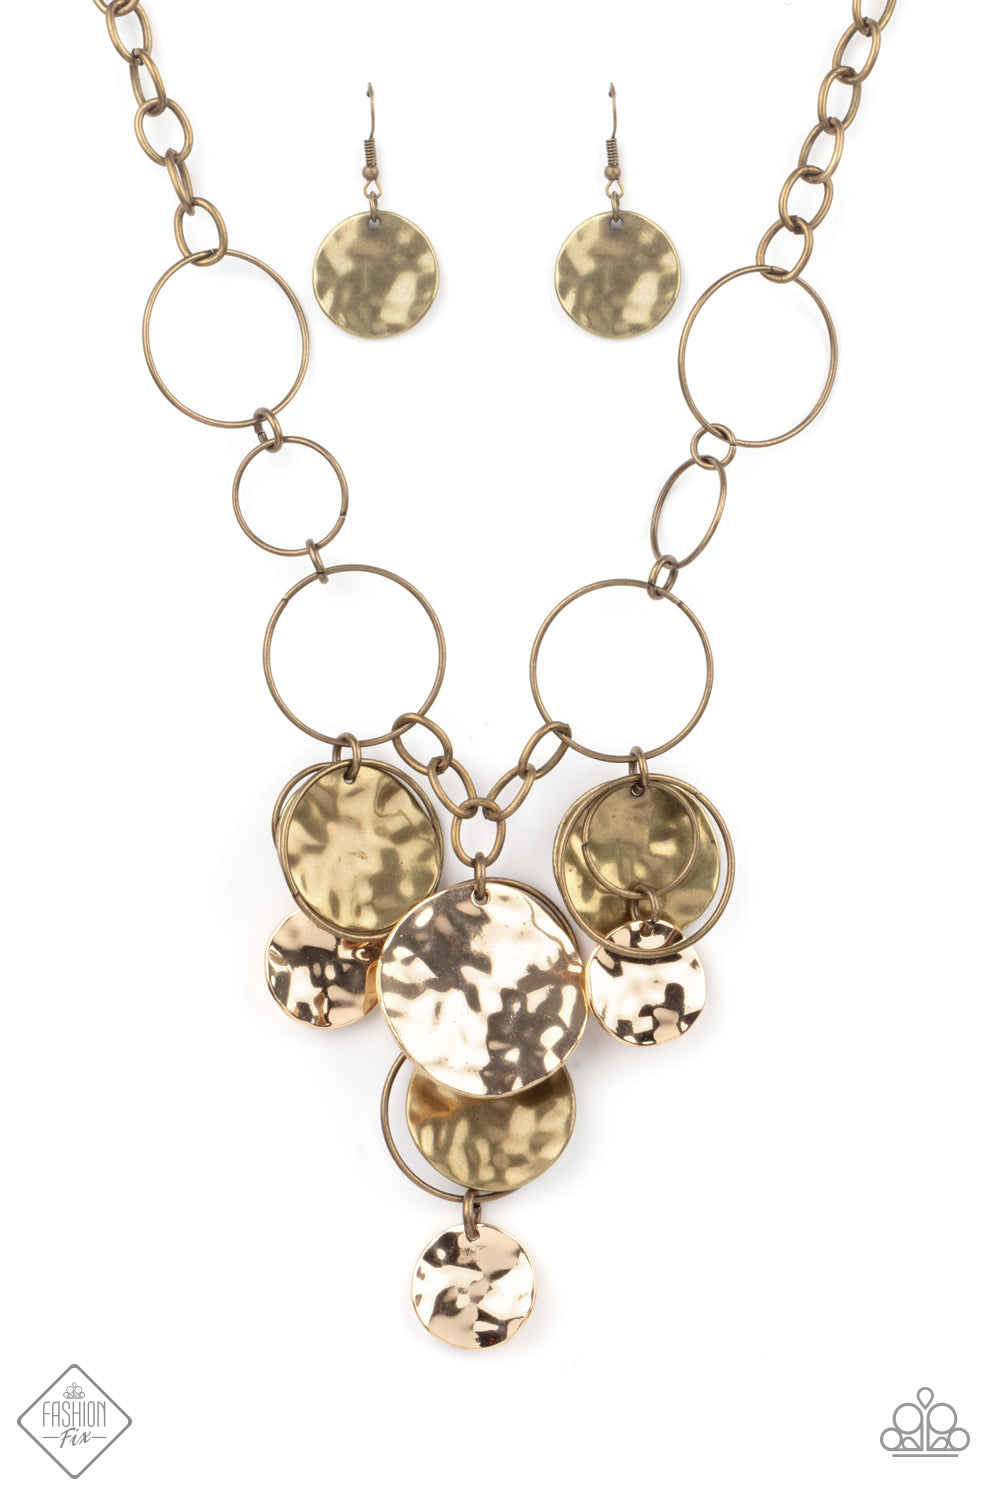 Paparazzi Necklace Fashion Fix Jan 2021 ~ Learn the HARDWARE Way - Brass